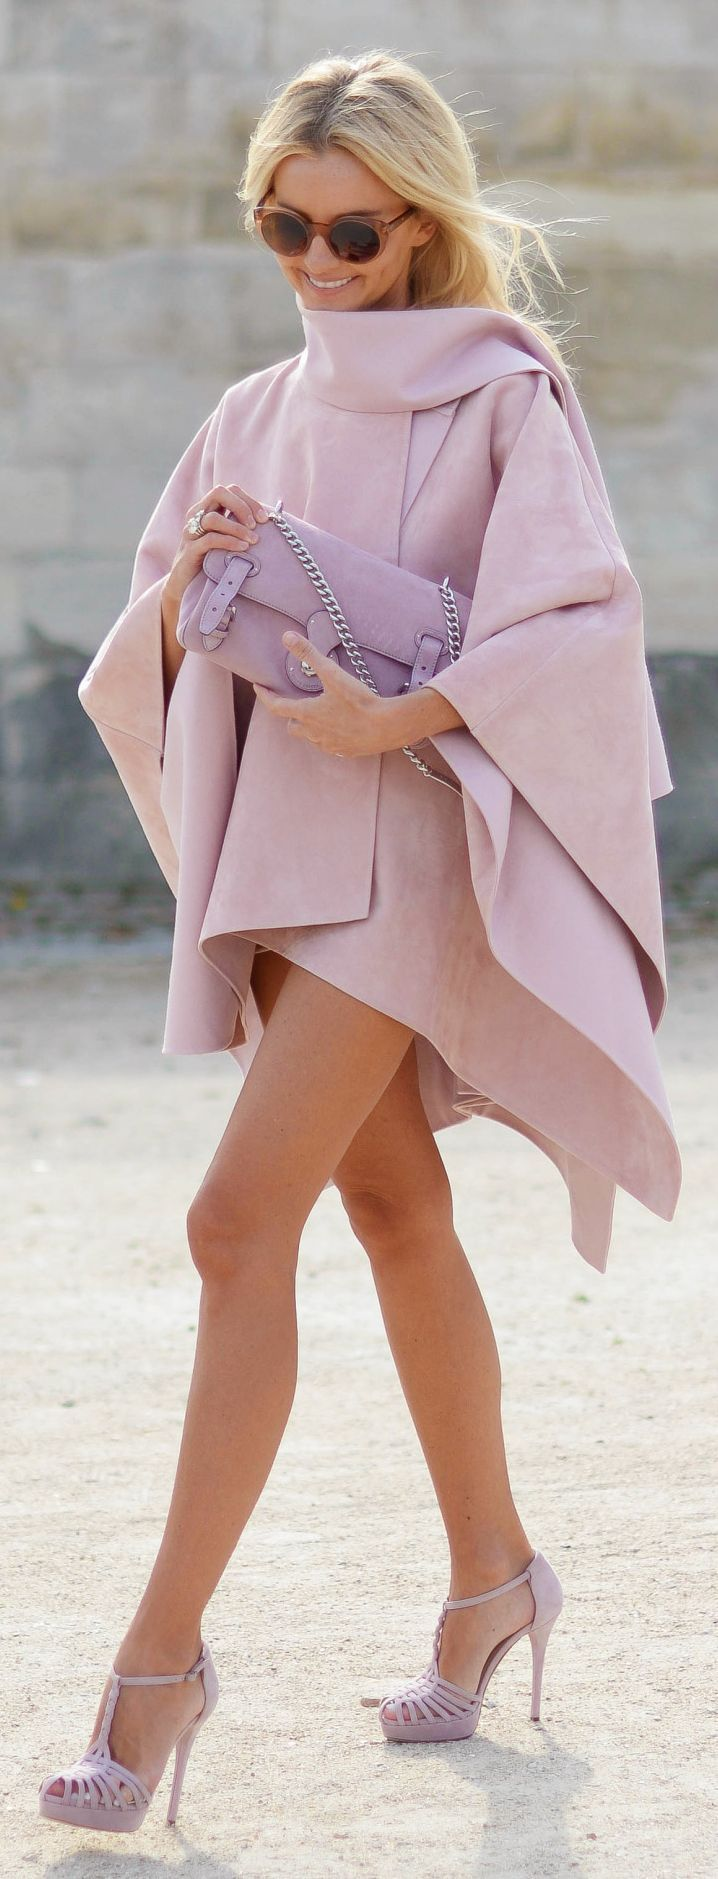 Shades Of Lilac Chic Style